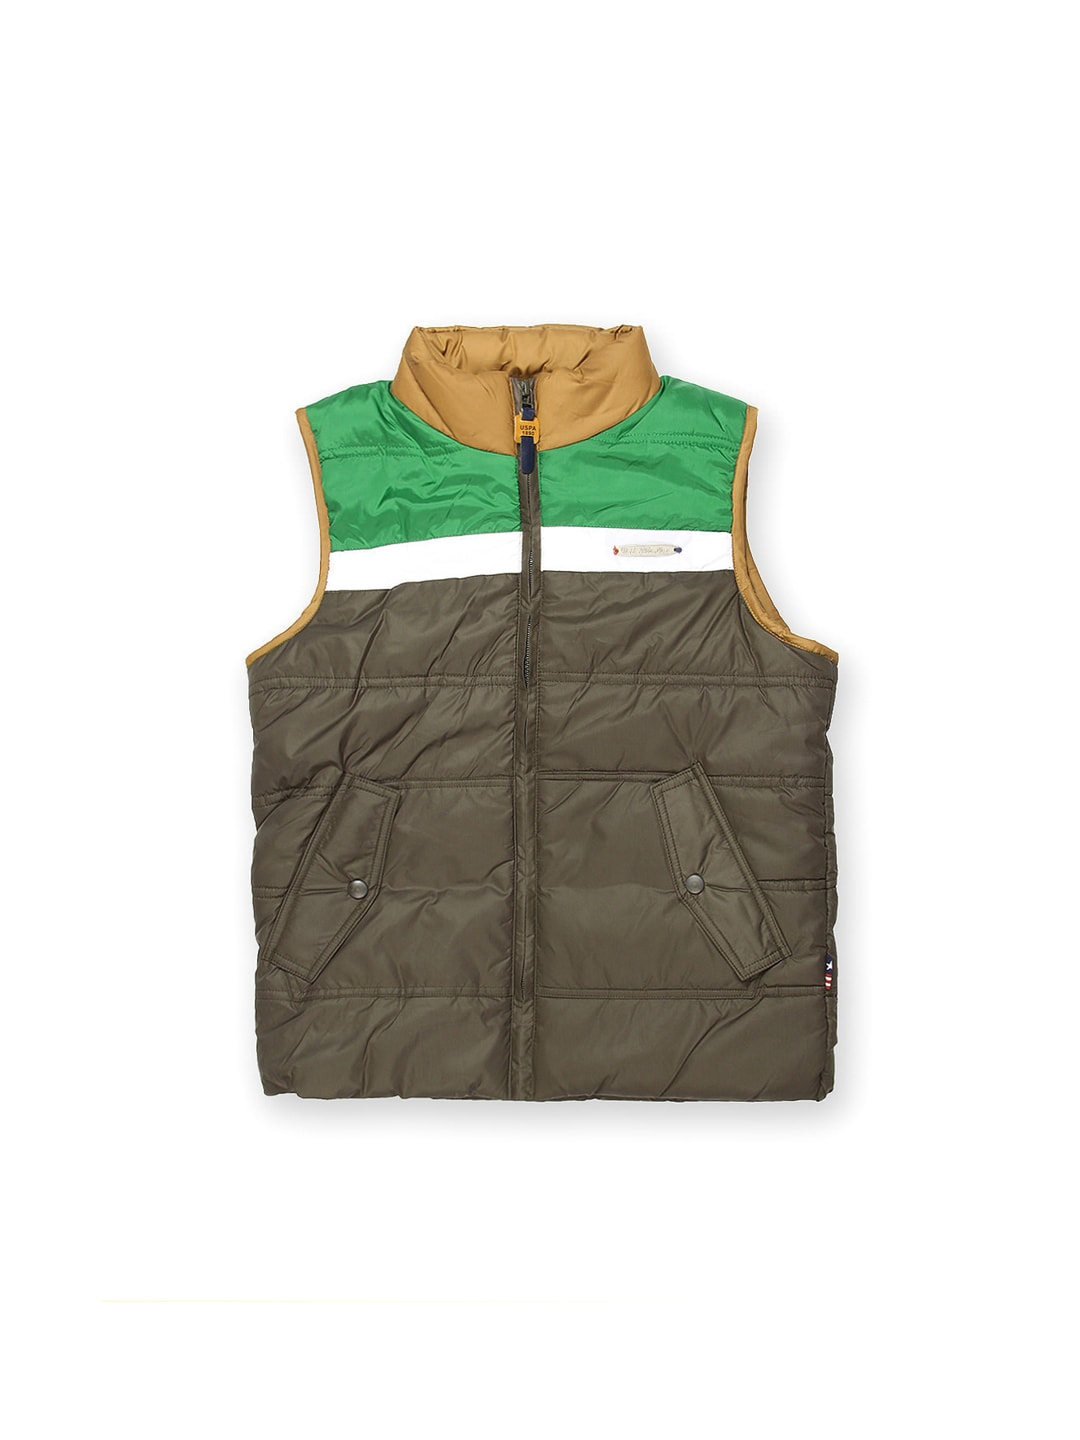 U.S. Polo Assn. Kids Boys Olive Green Sleeveless Padded Jacket